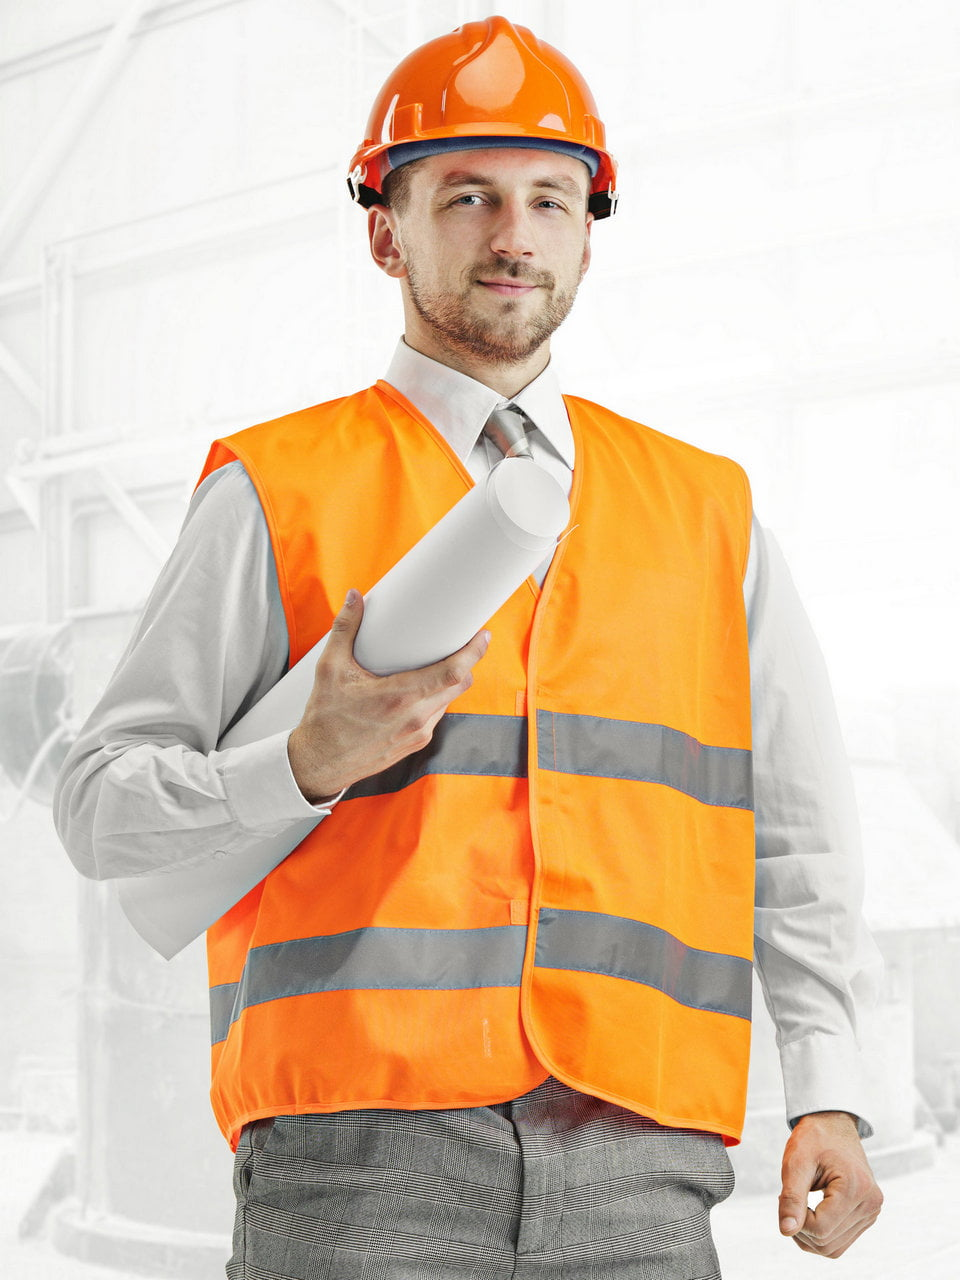 The builder in a construction vest and orange helmet standing against industrial background. Safety specialist, engineer, industry, architecture, manager, occupation, businessman, job concept